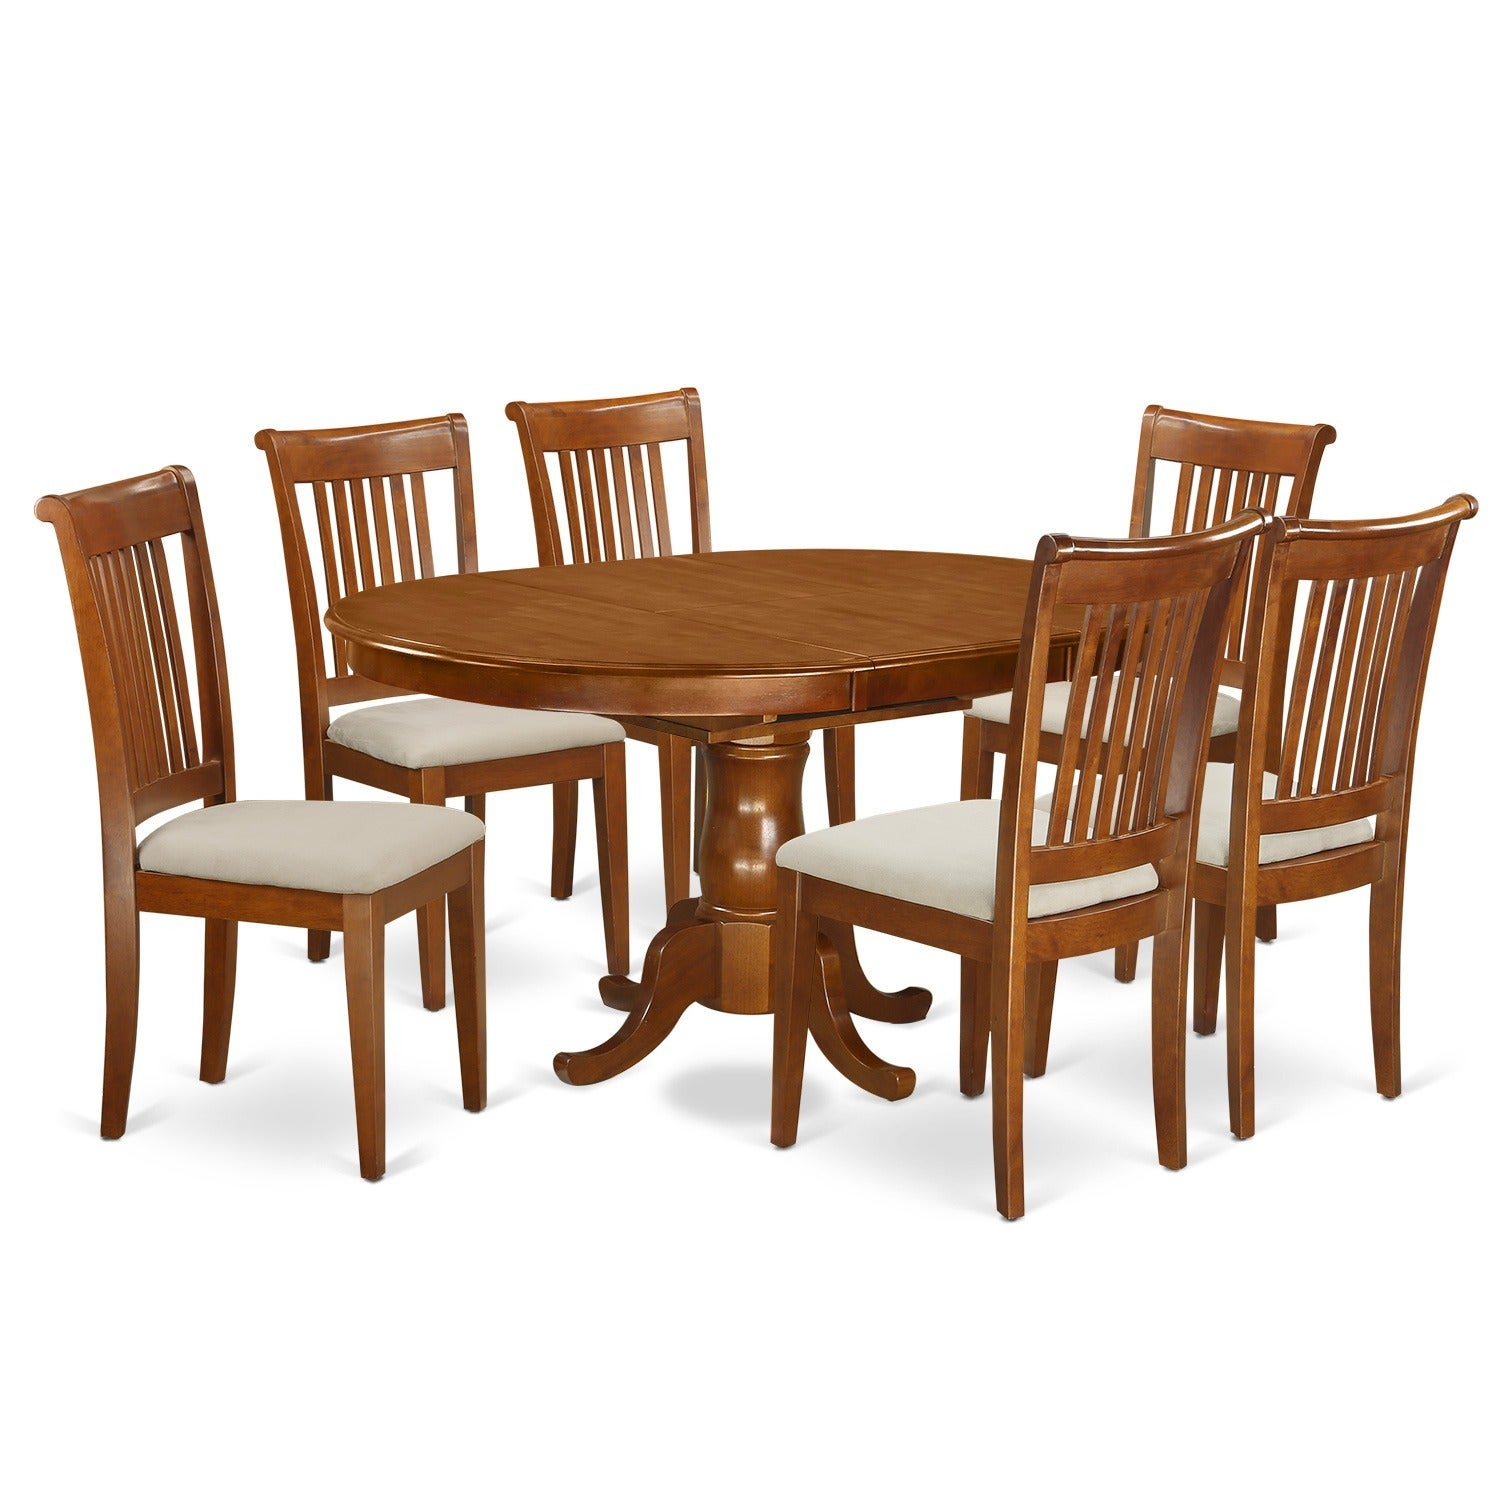 Oval Dining Room Table Sets: 7-piece Oval Dining Table With Leaf And 6 Dining Chairs